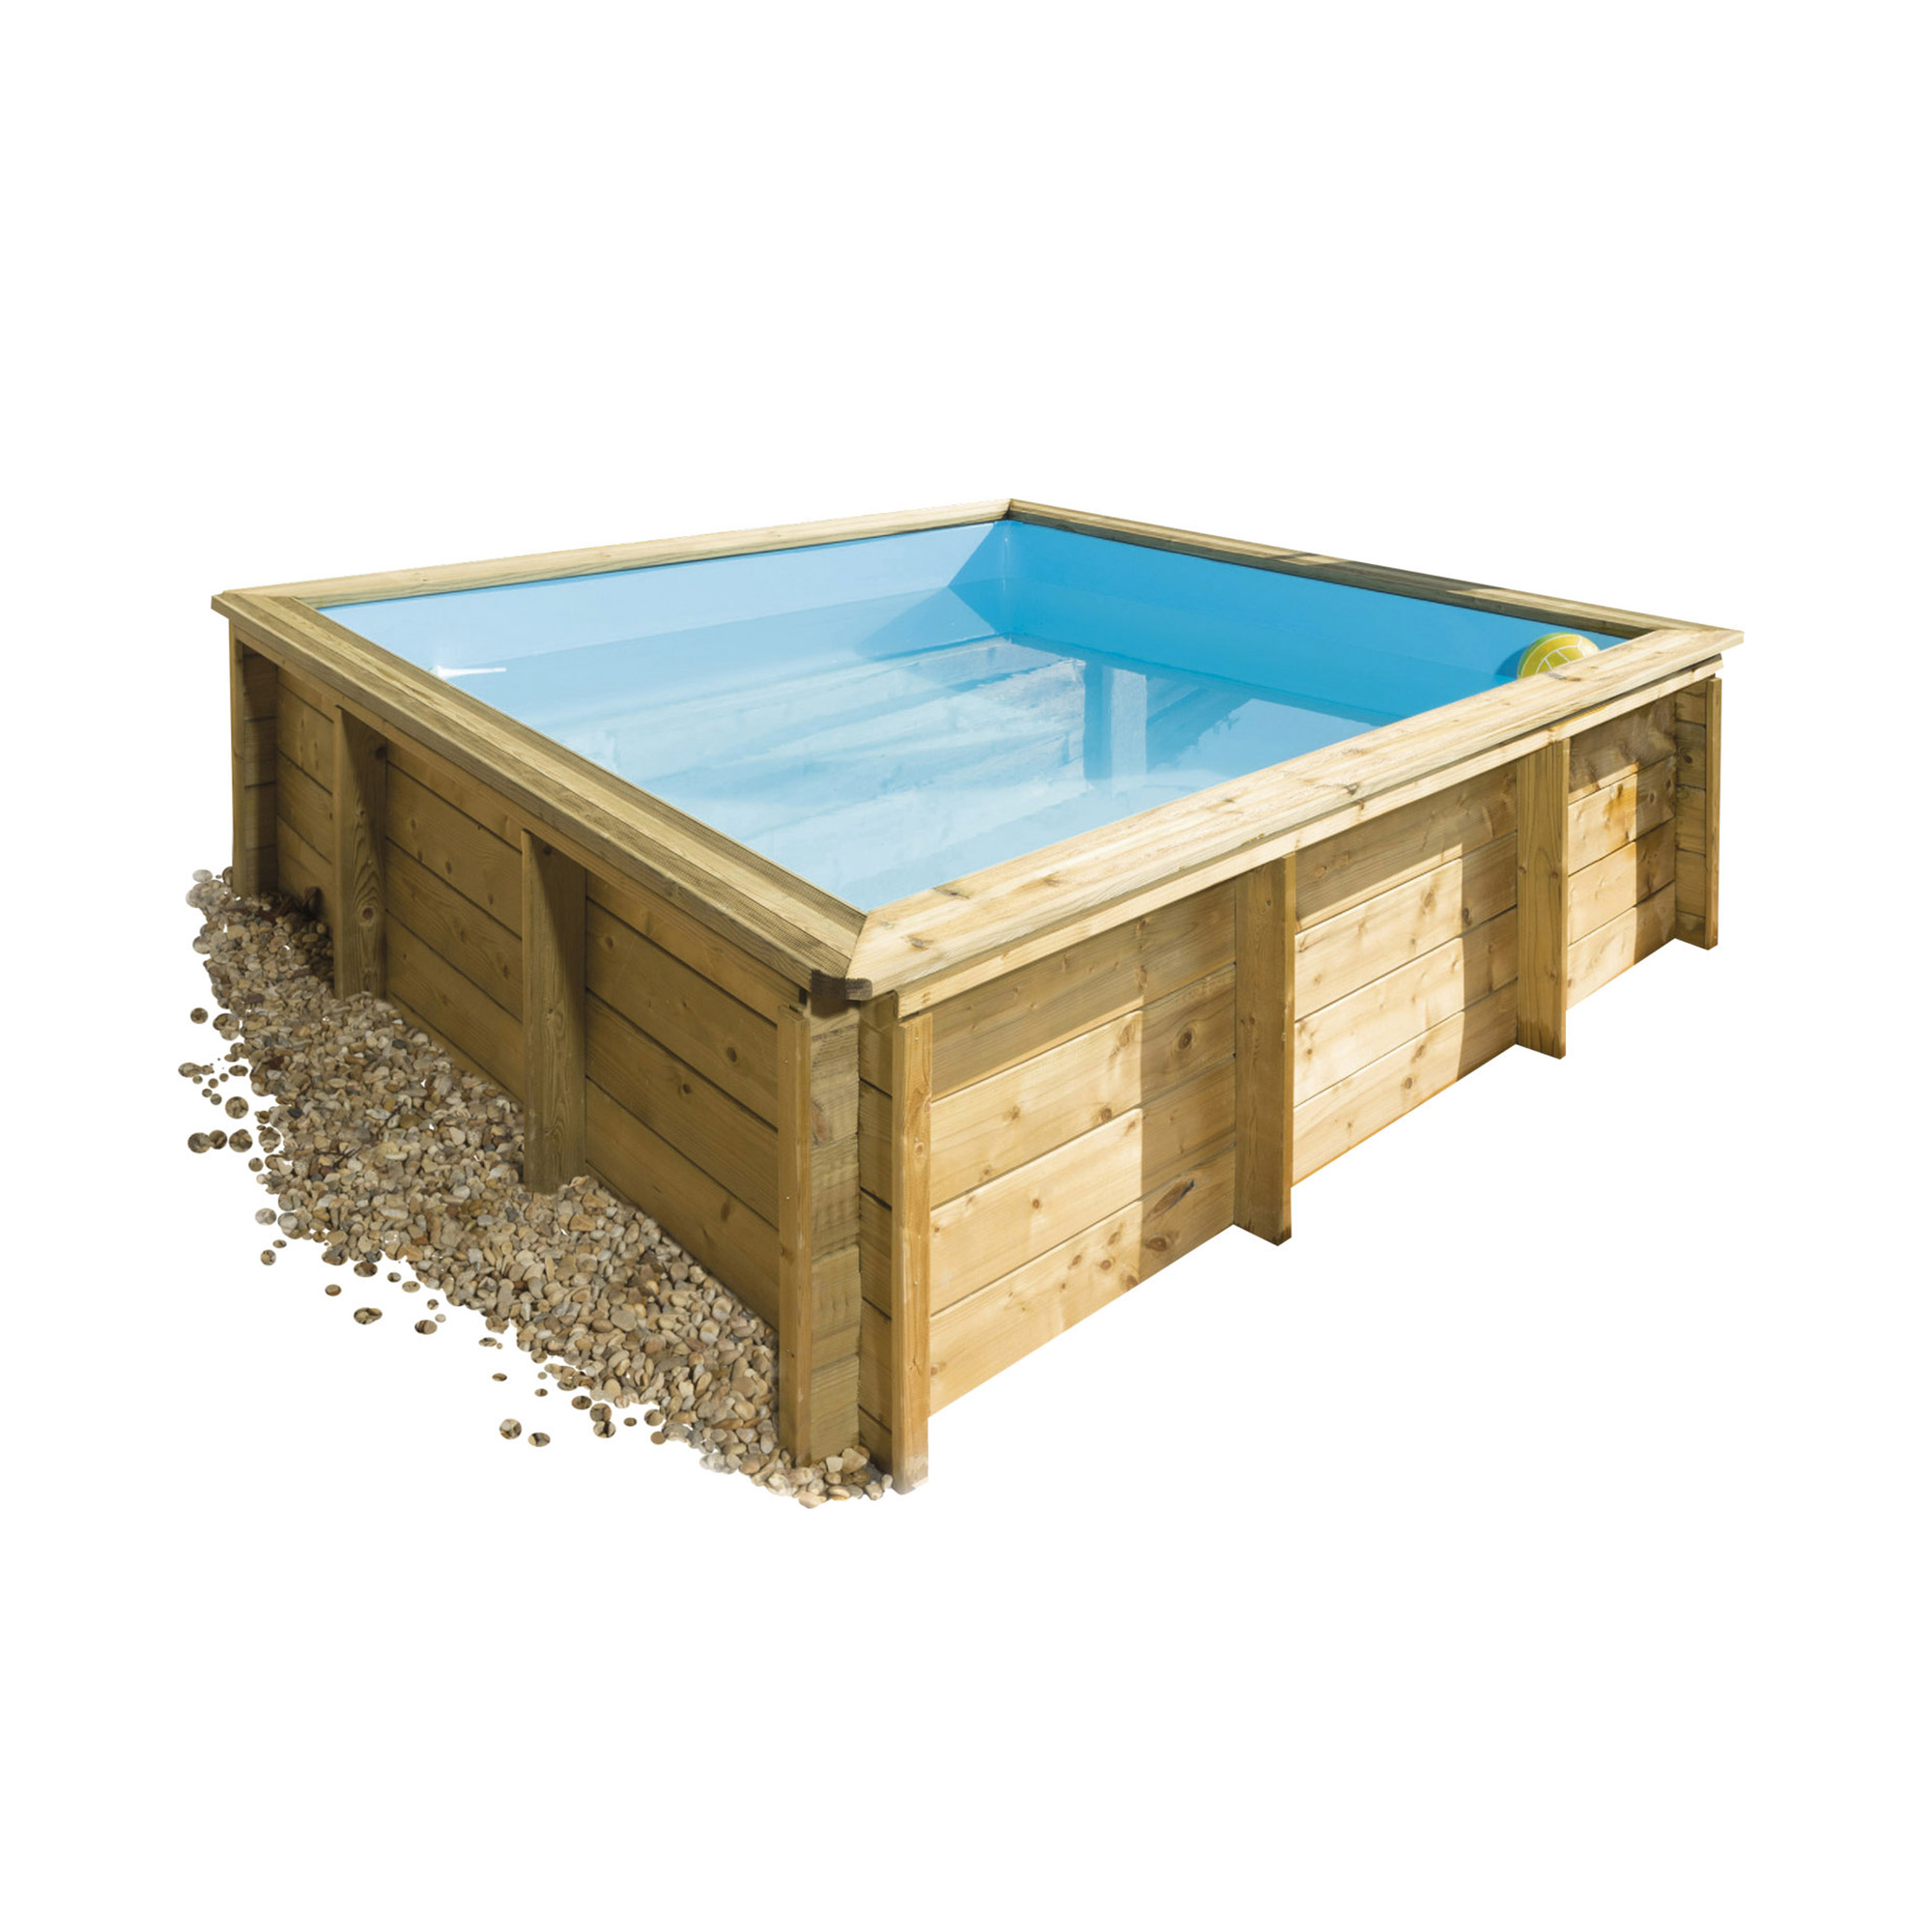 Piscine Tropic Junior Piscine Bois Carrée Hors Sol Quotla Tropic Junior Quot Piscines